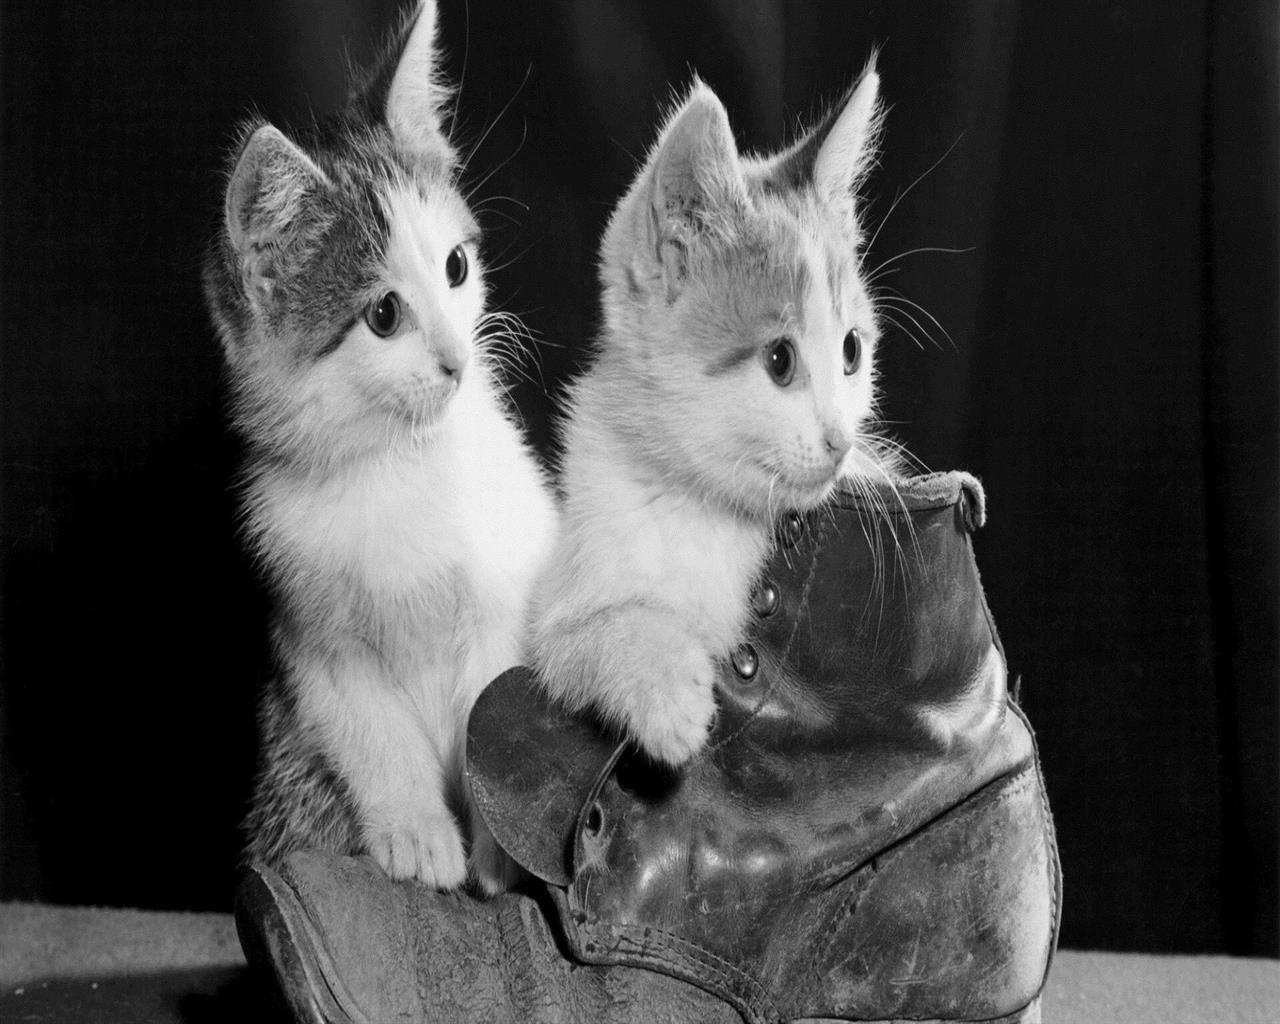 1280x1024 Cute Little White Cat on Shoes